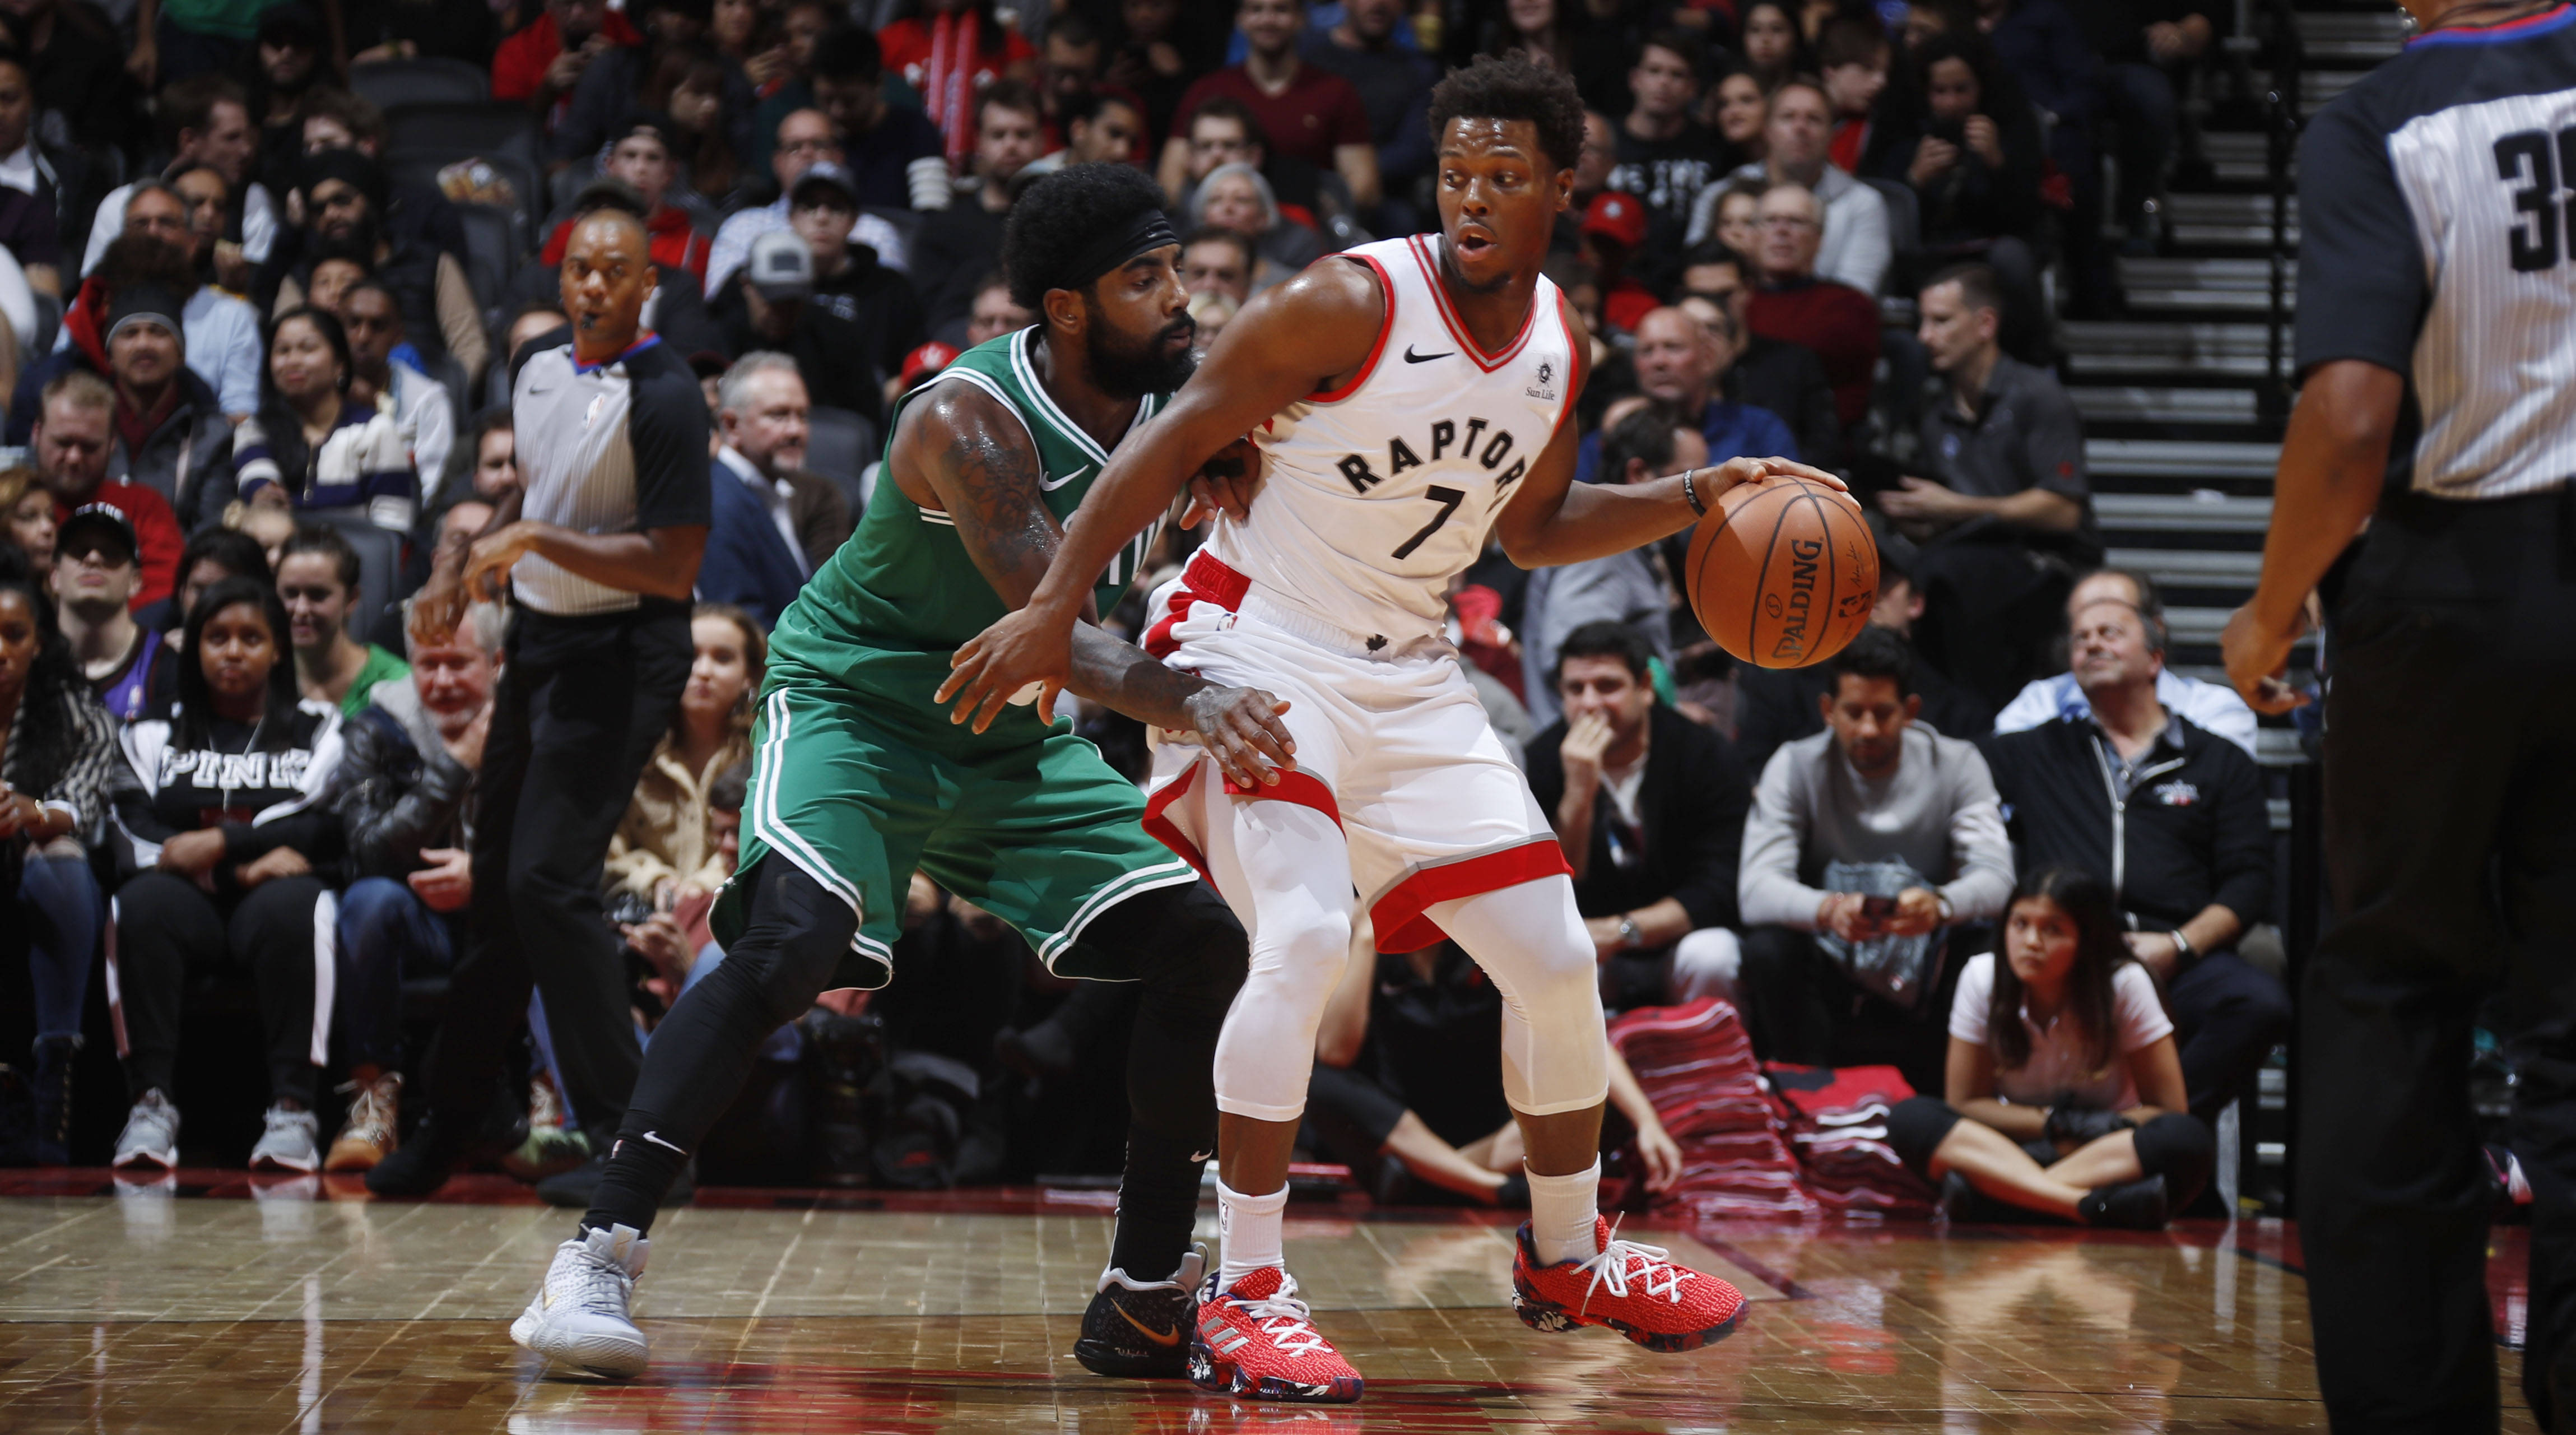 bf23772a88f62 For Kyle Lowry and the Raptors